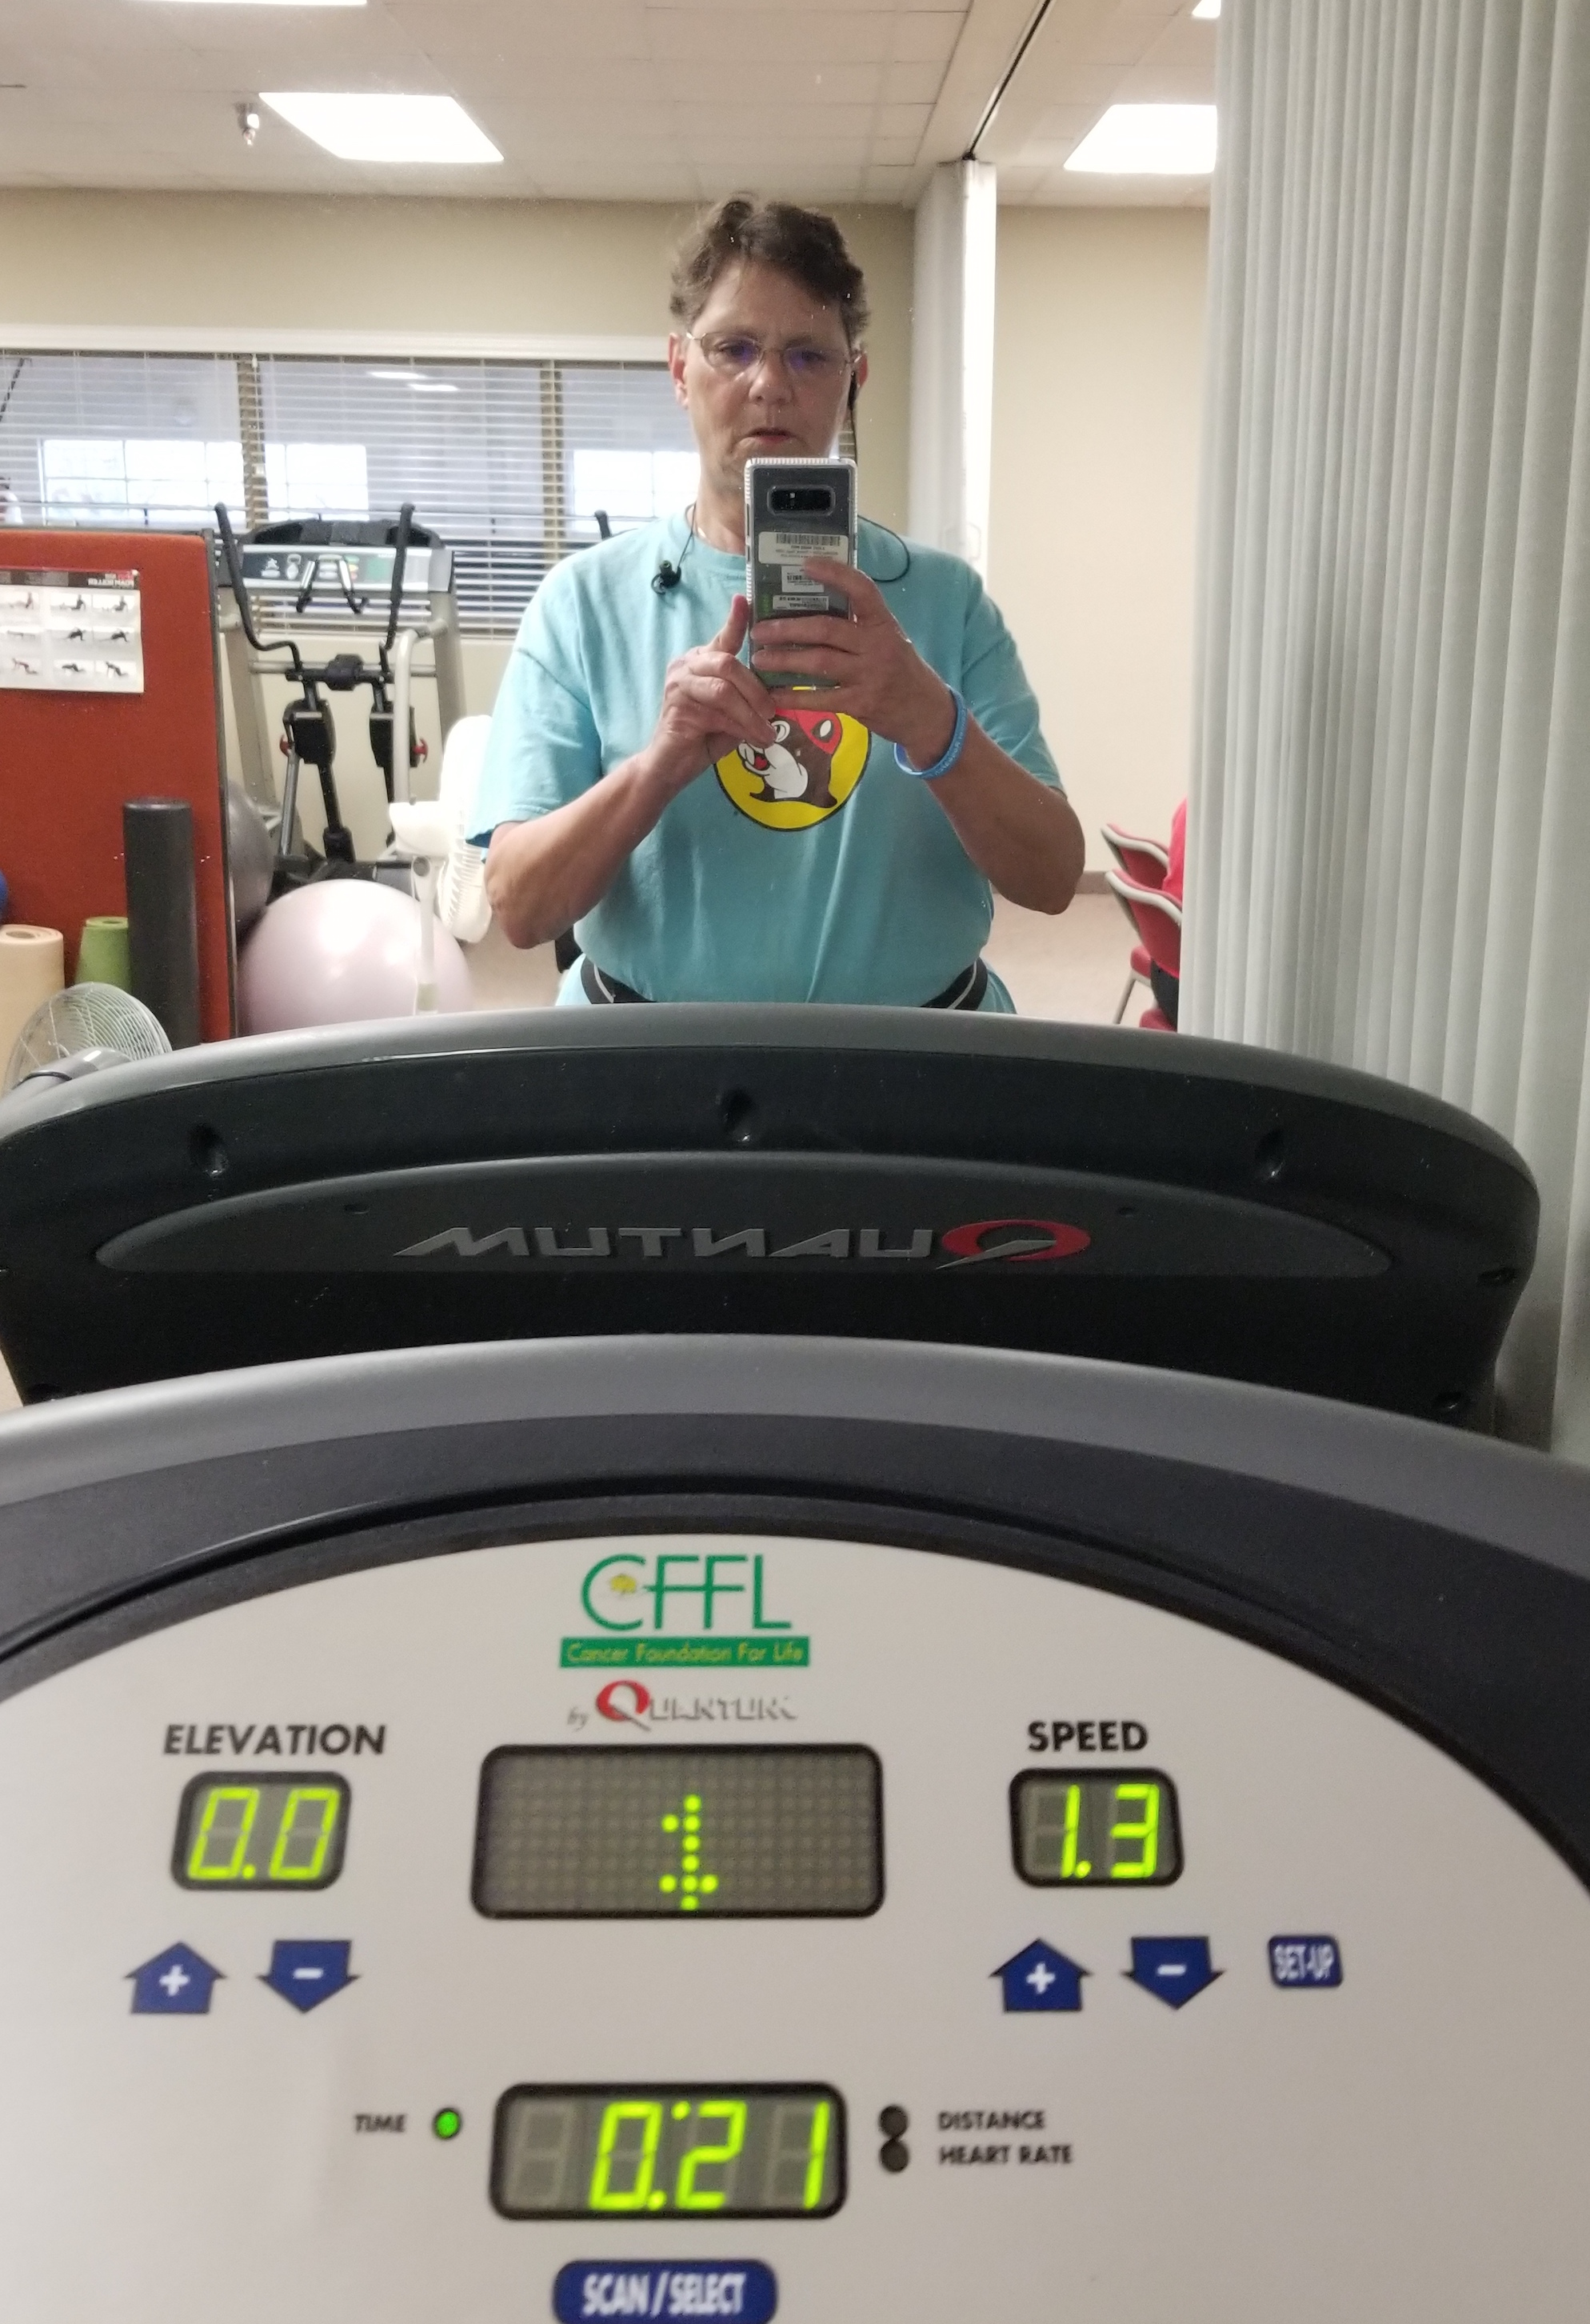 The author, Donna, exercising on the treadmill